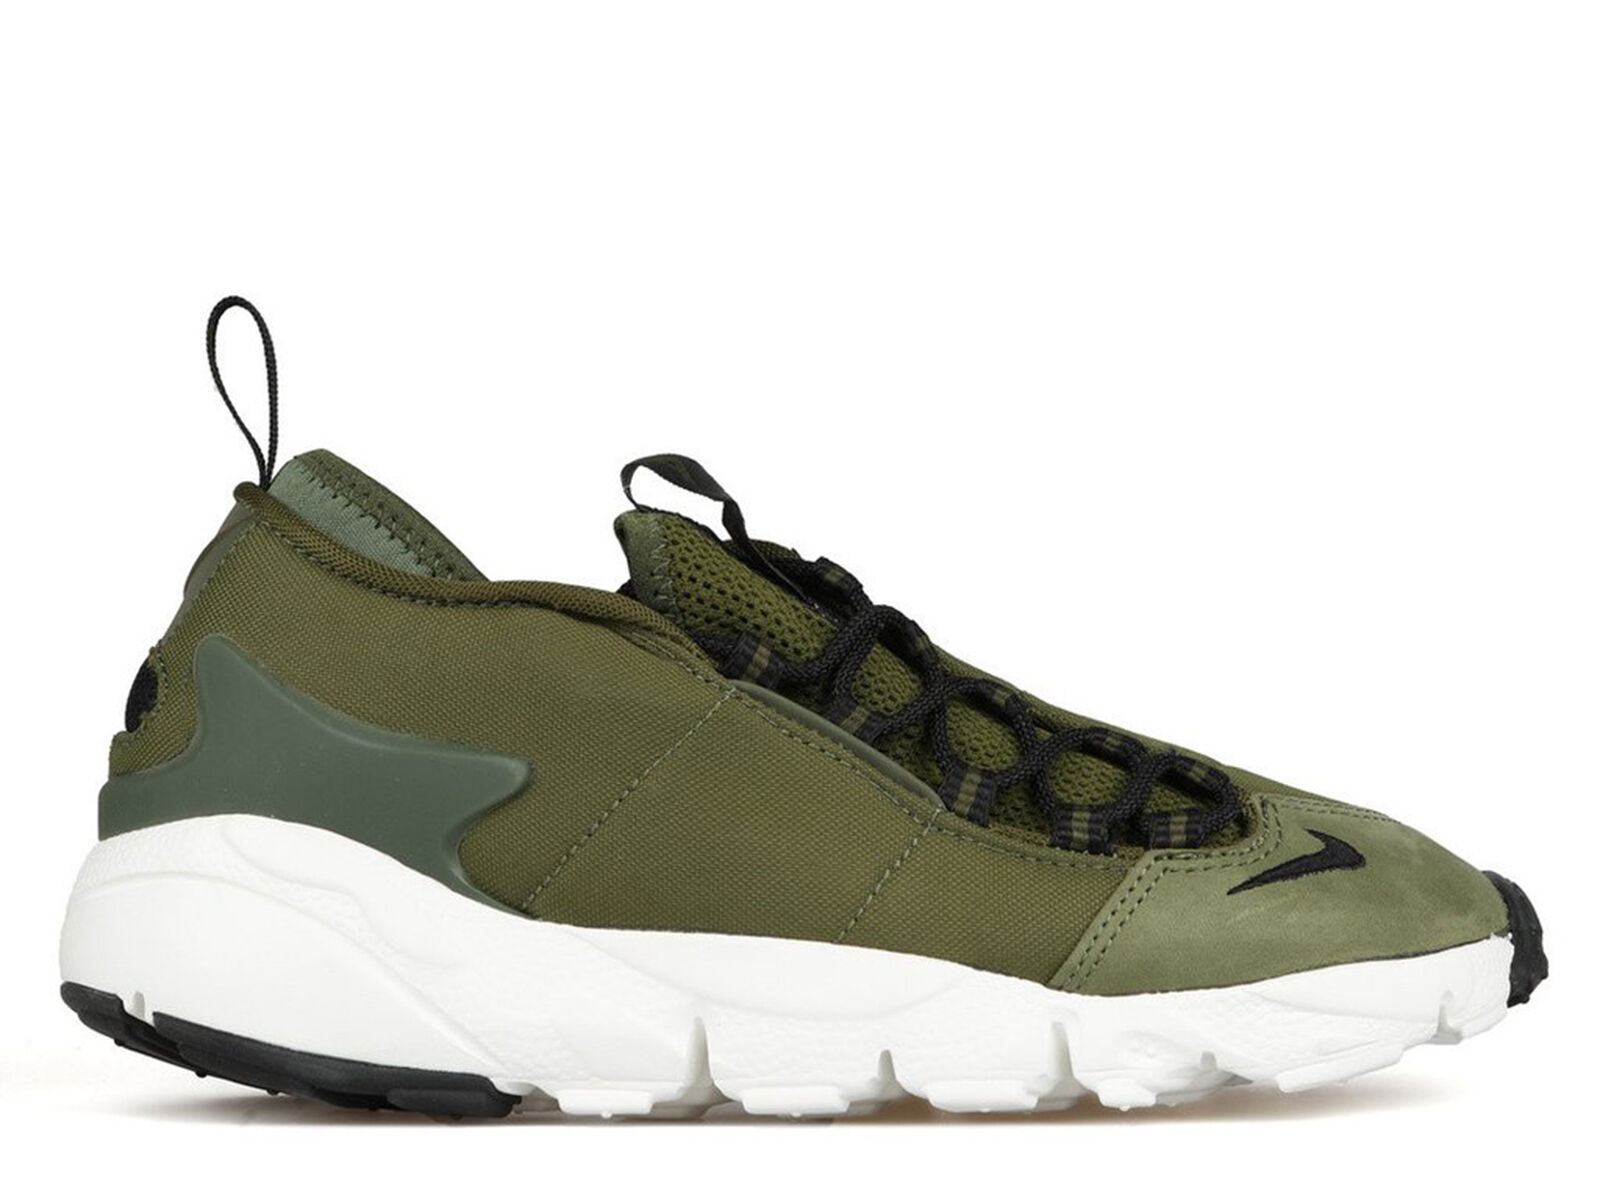 Brand New Nike Air Footscape NM Men's Athletic Fashion Sneakers [852629 300]